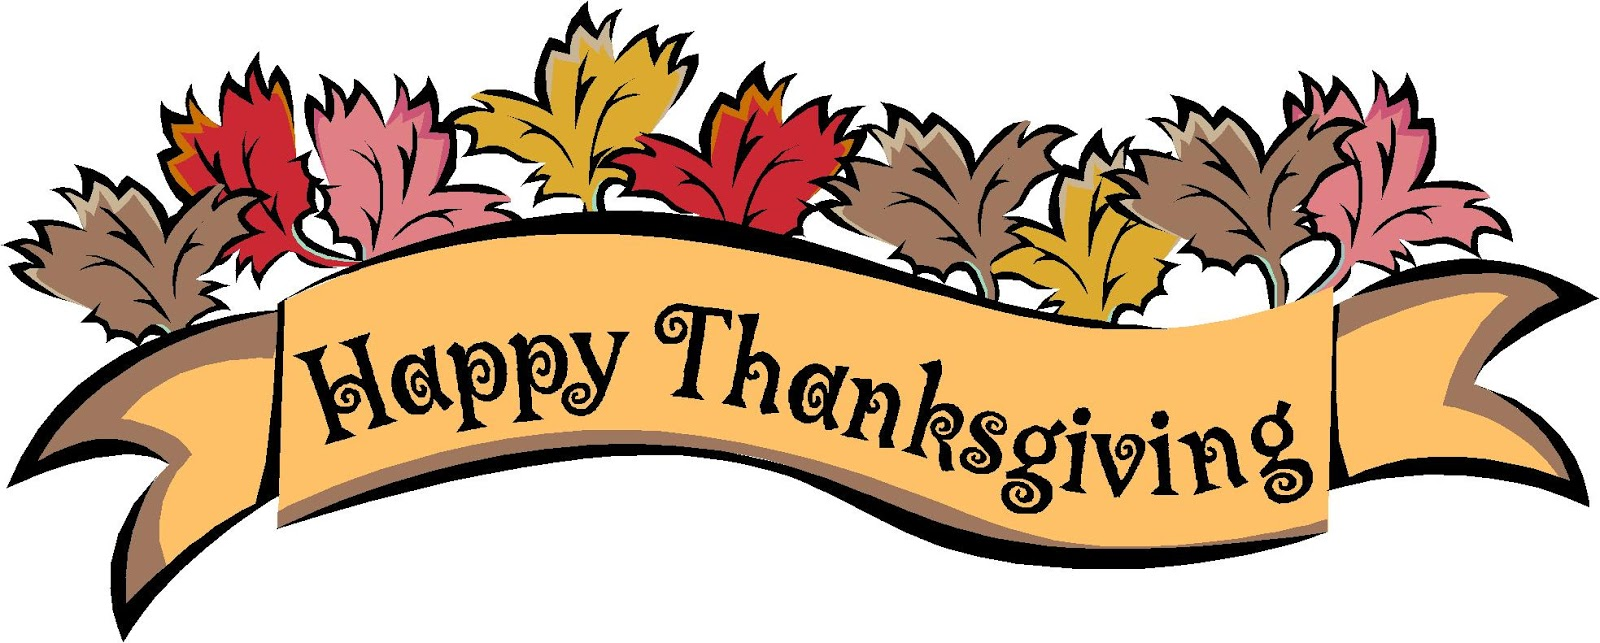 1600x643 Christian Happy Thanksgiving Clipart